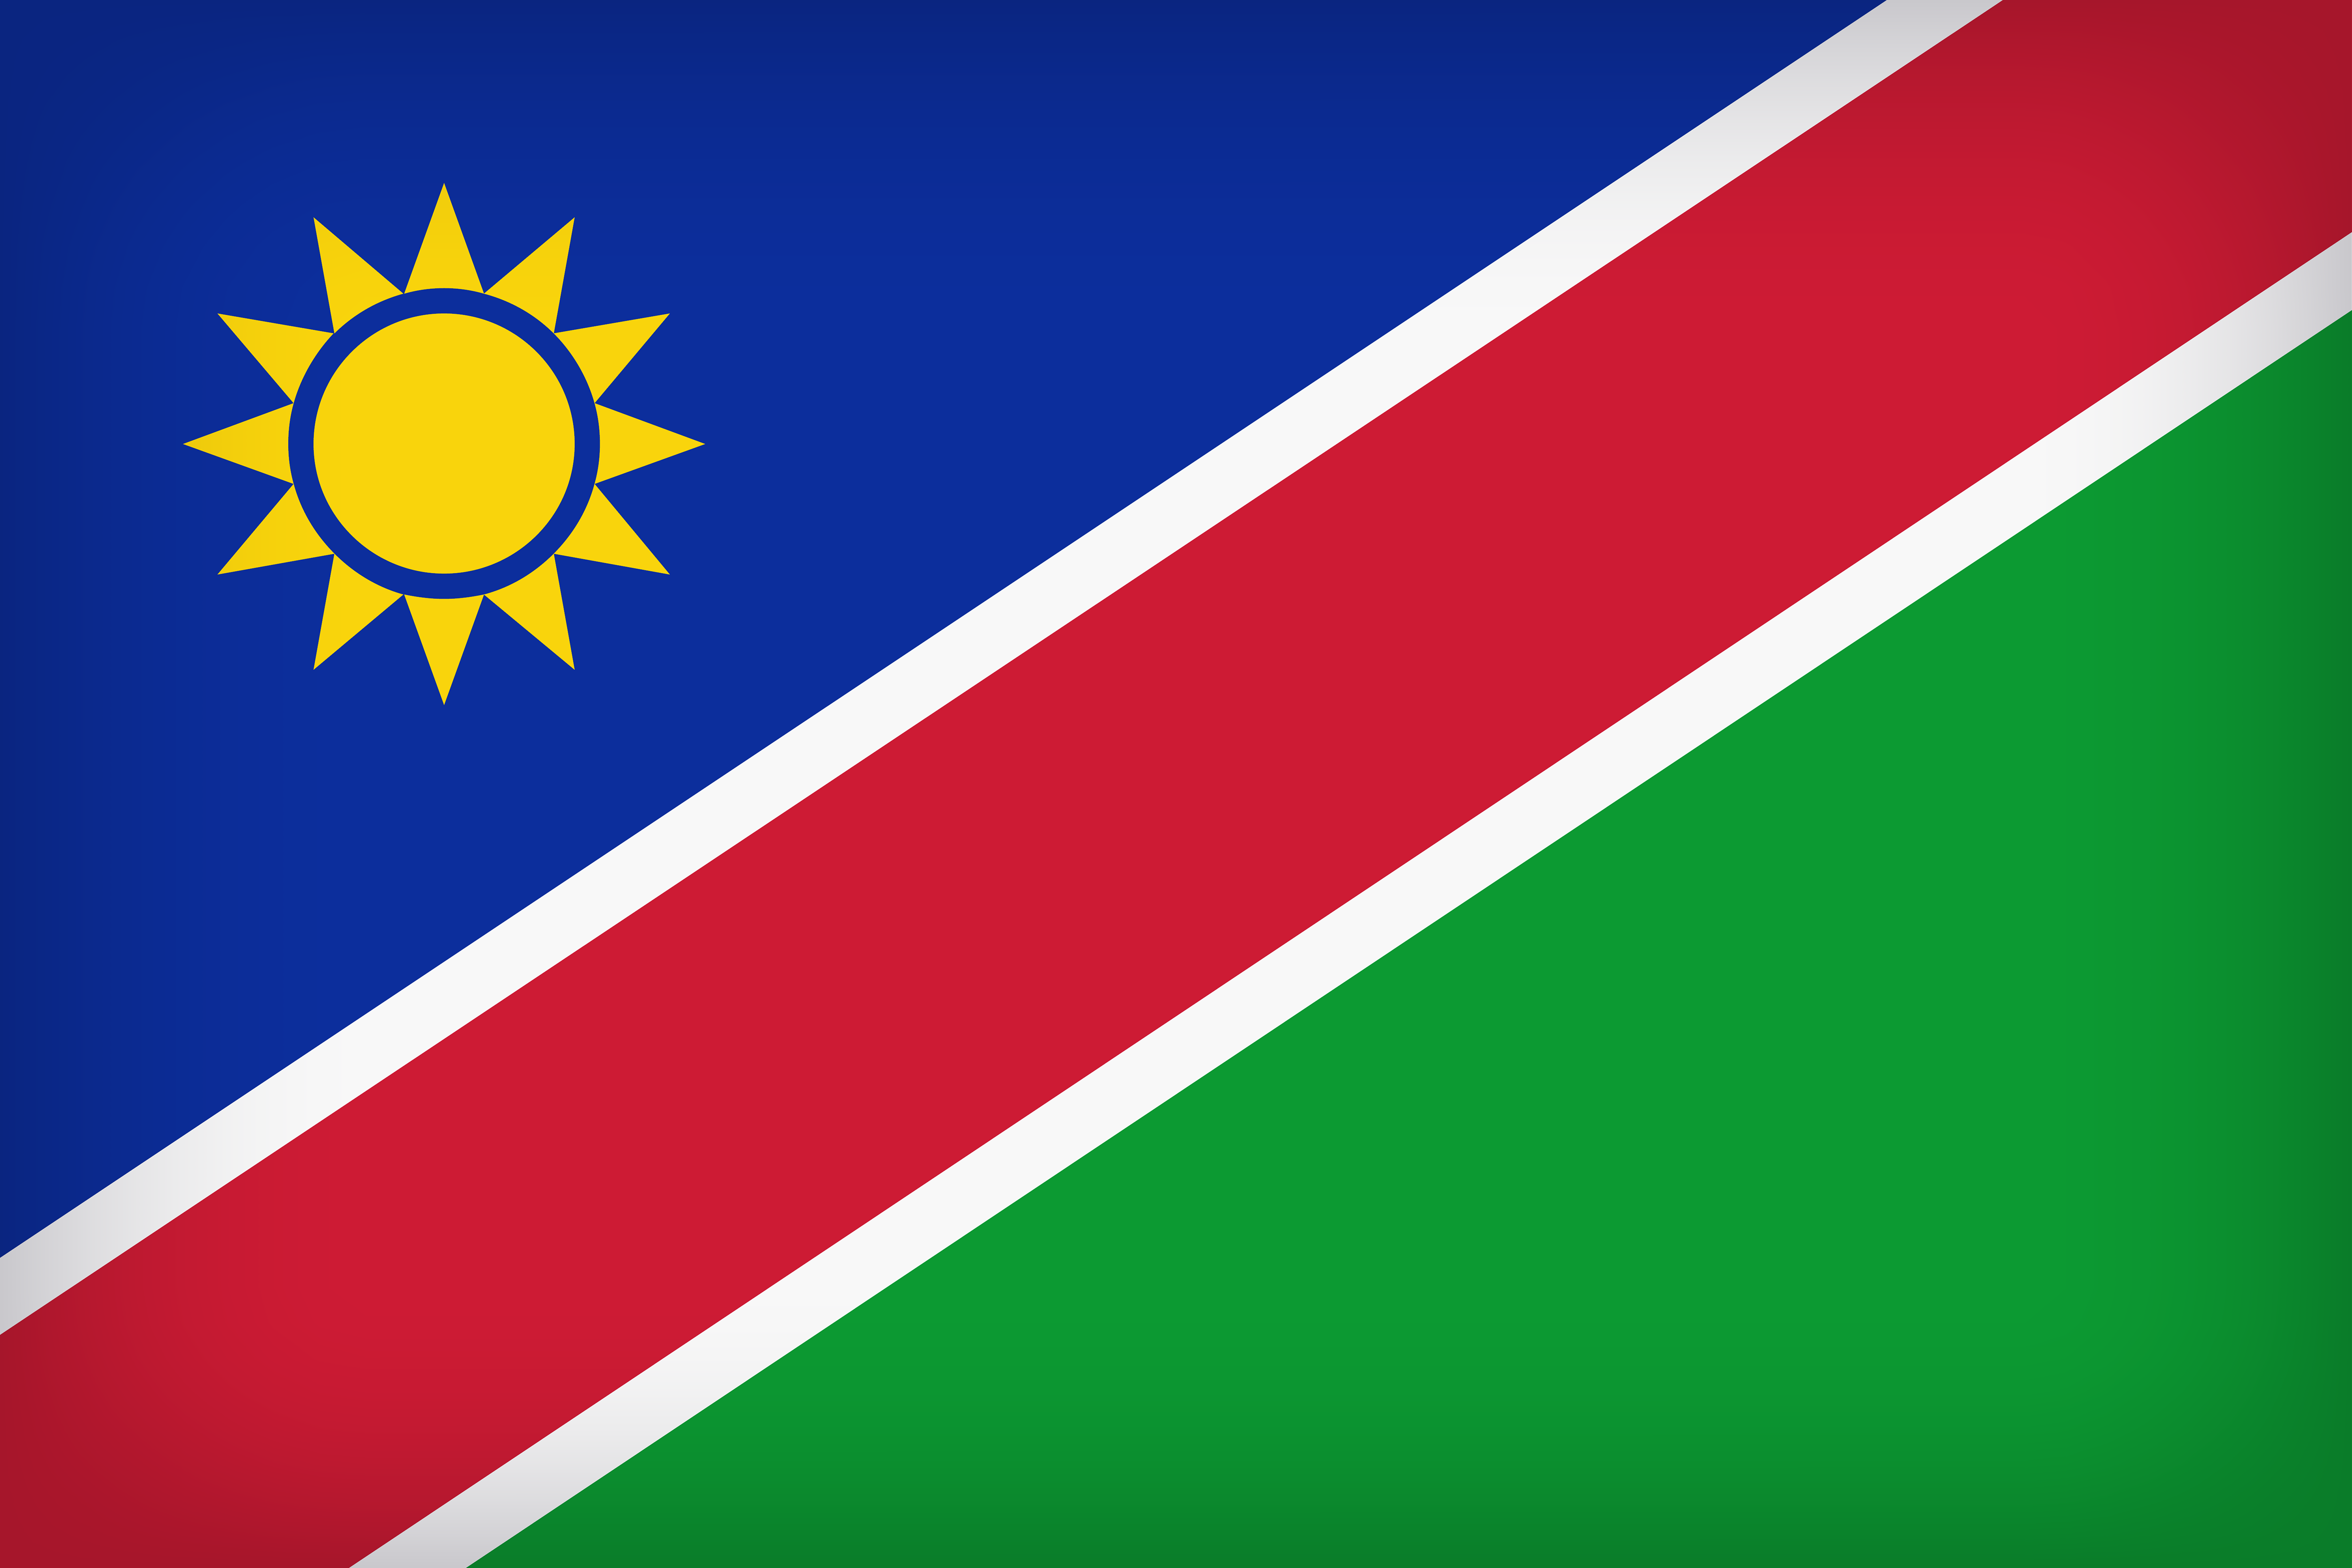 Namibia Large Flag Gallery Yopriceville   High Quality Images 5000x3333